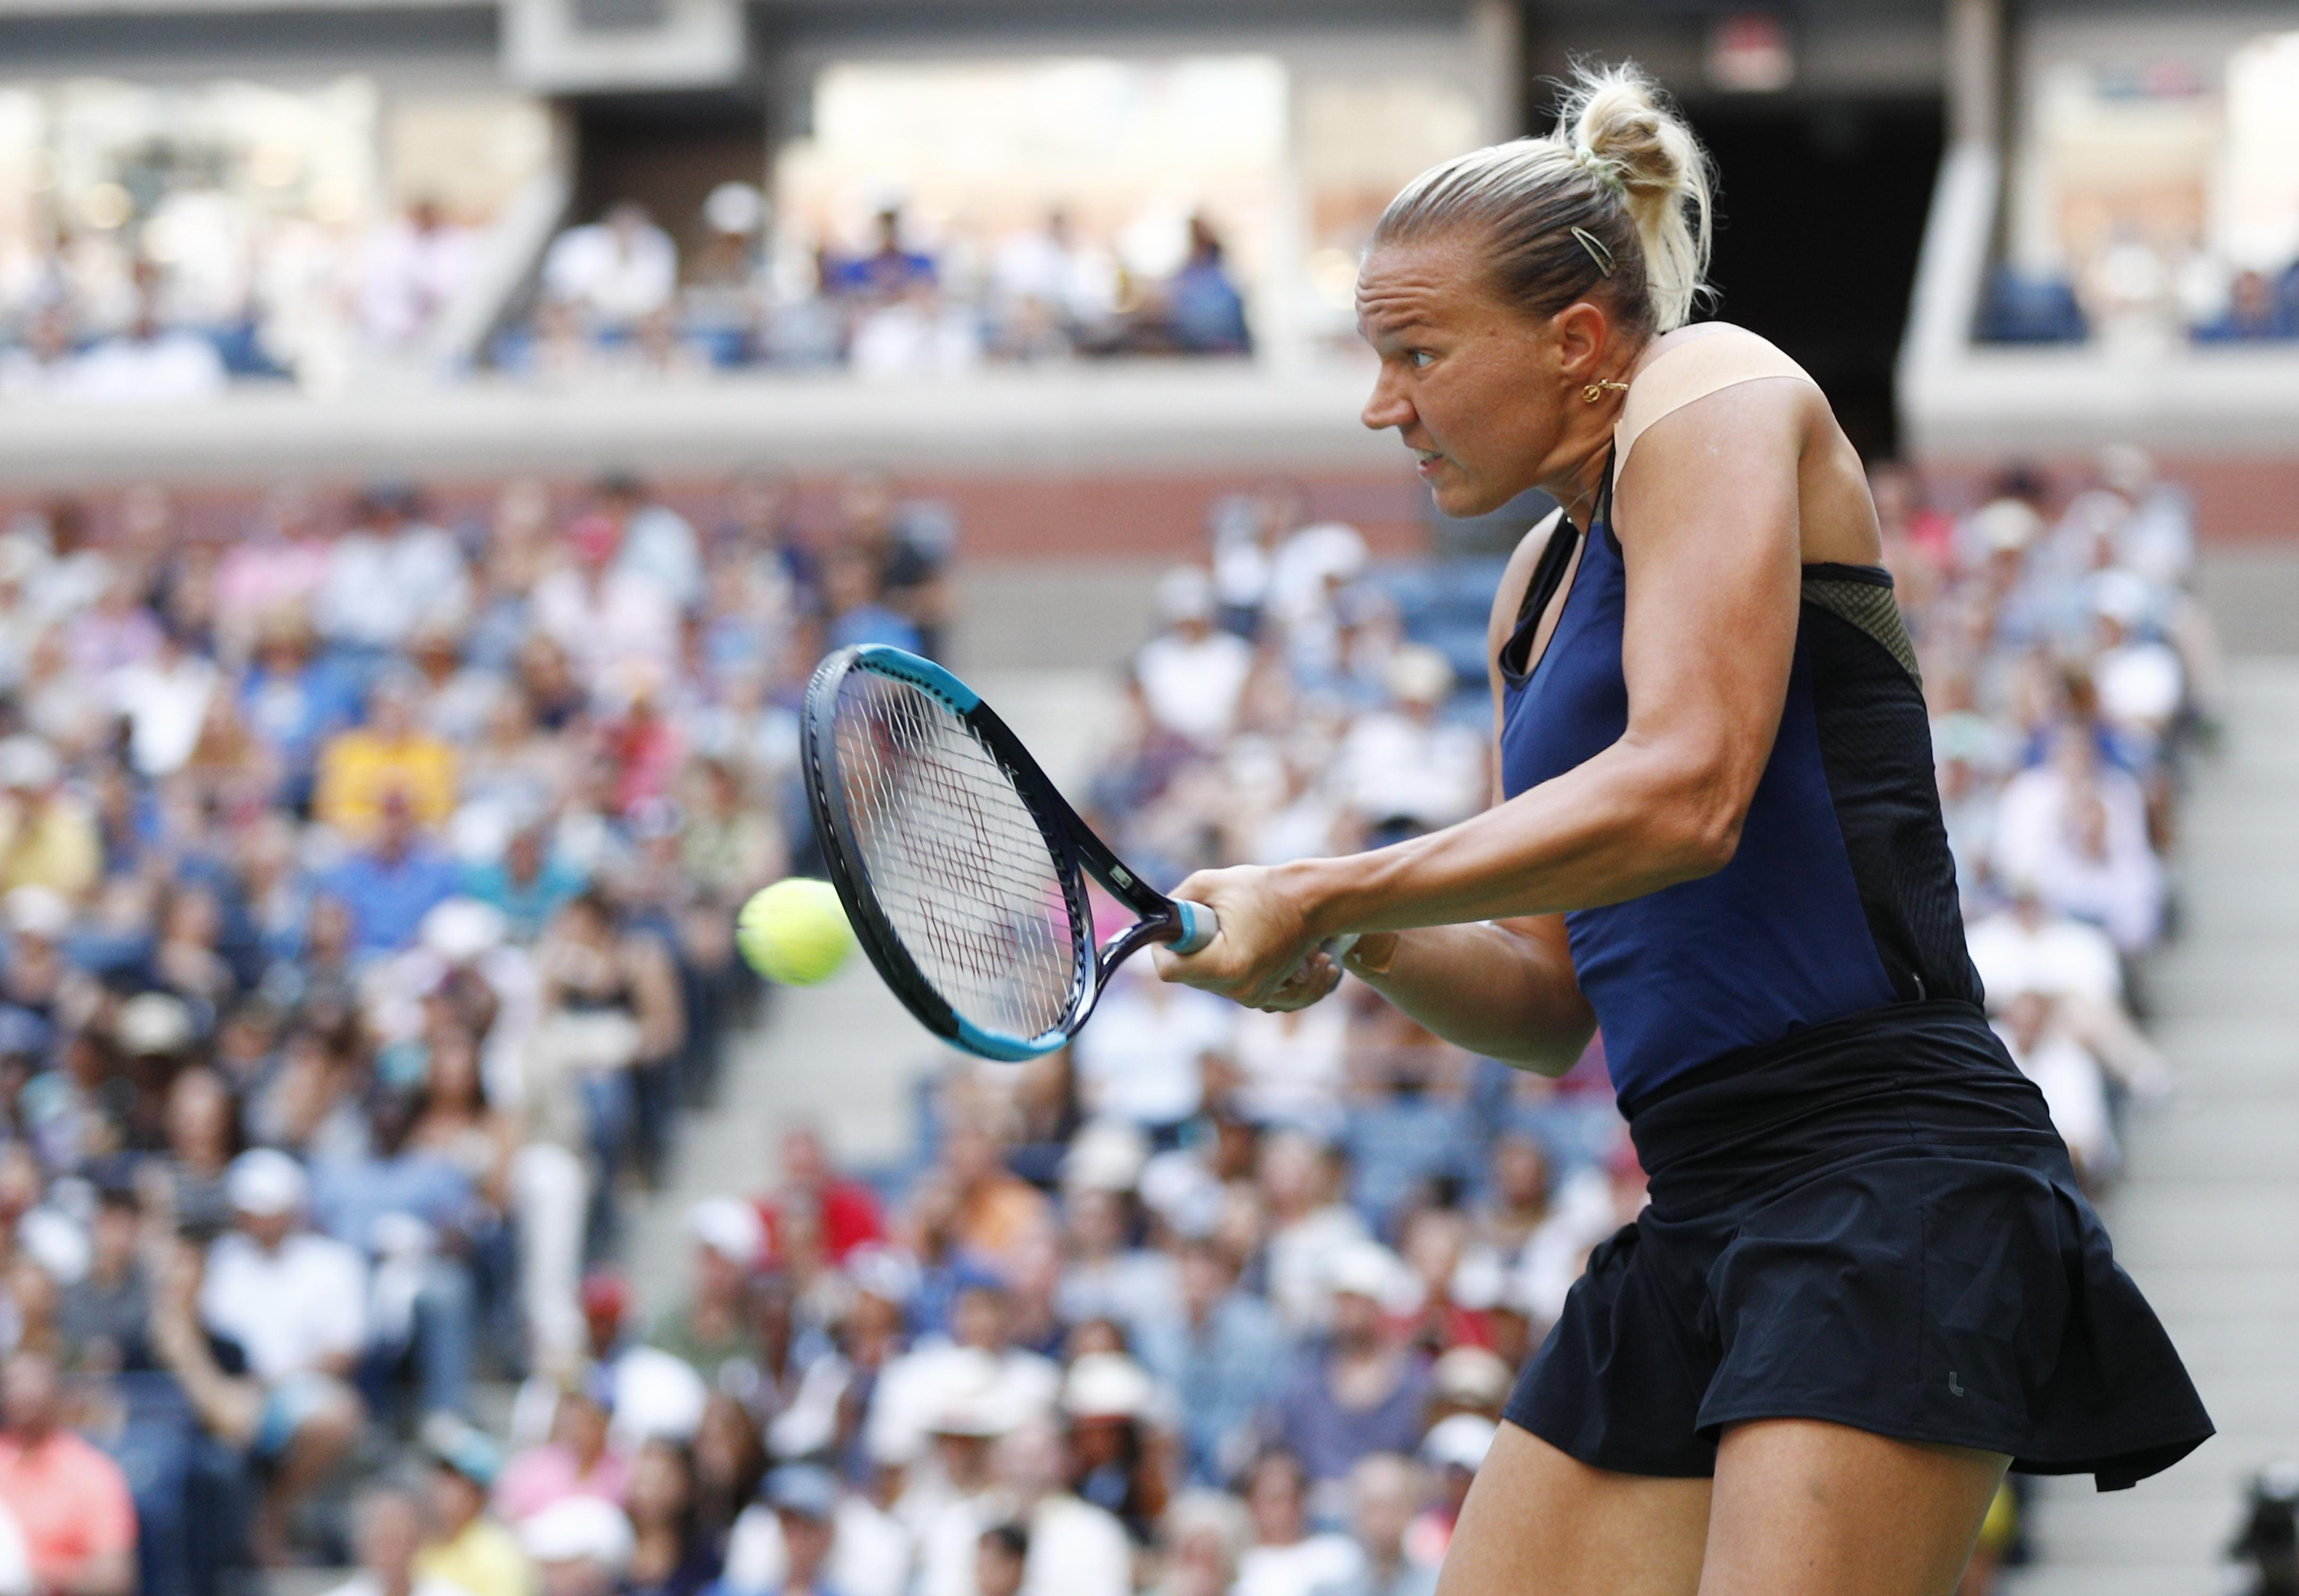 Kanepi was finally undone by the power and relentlessness of her 36-year-old opponent